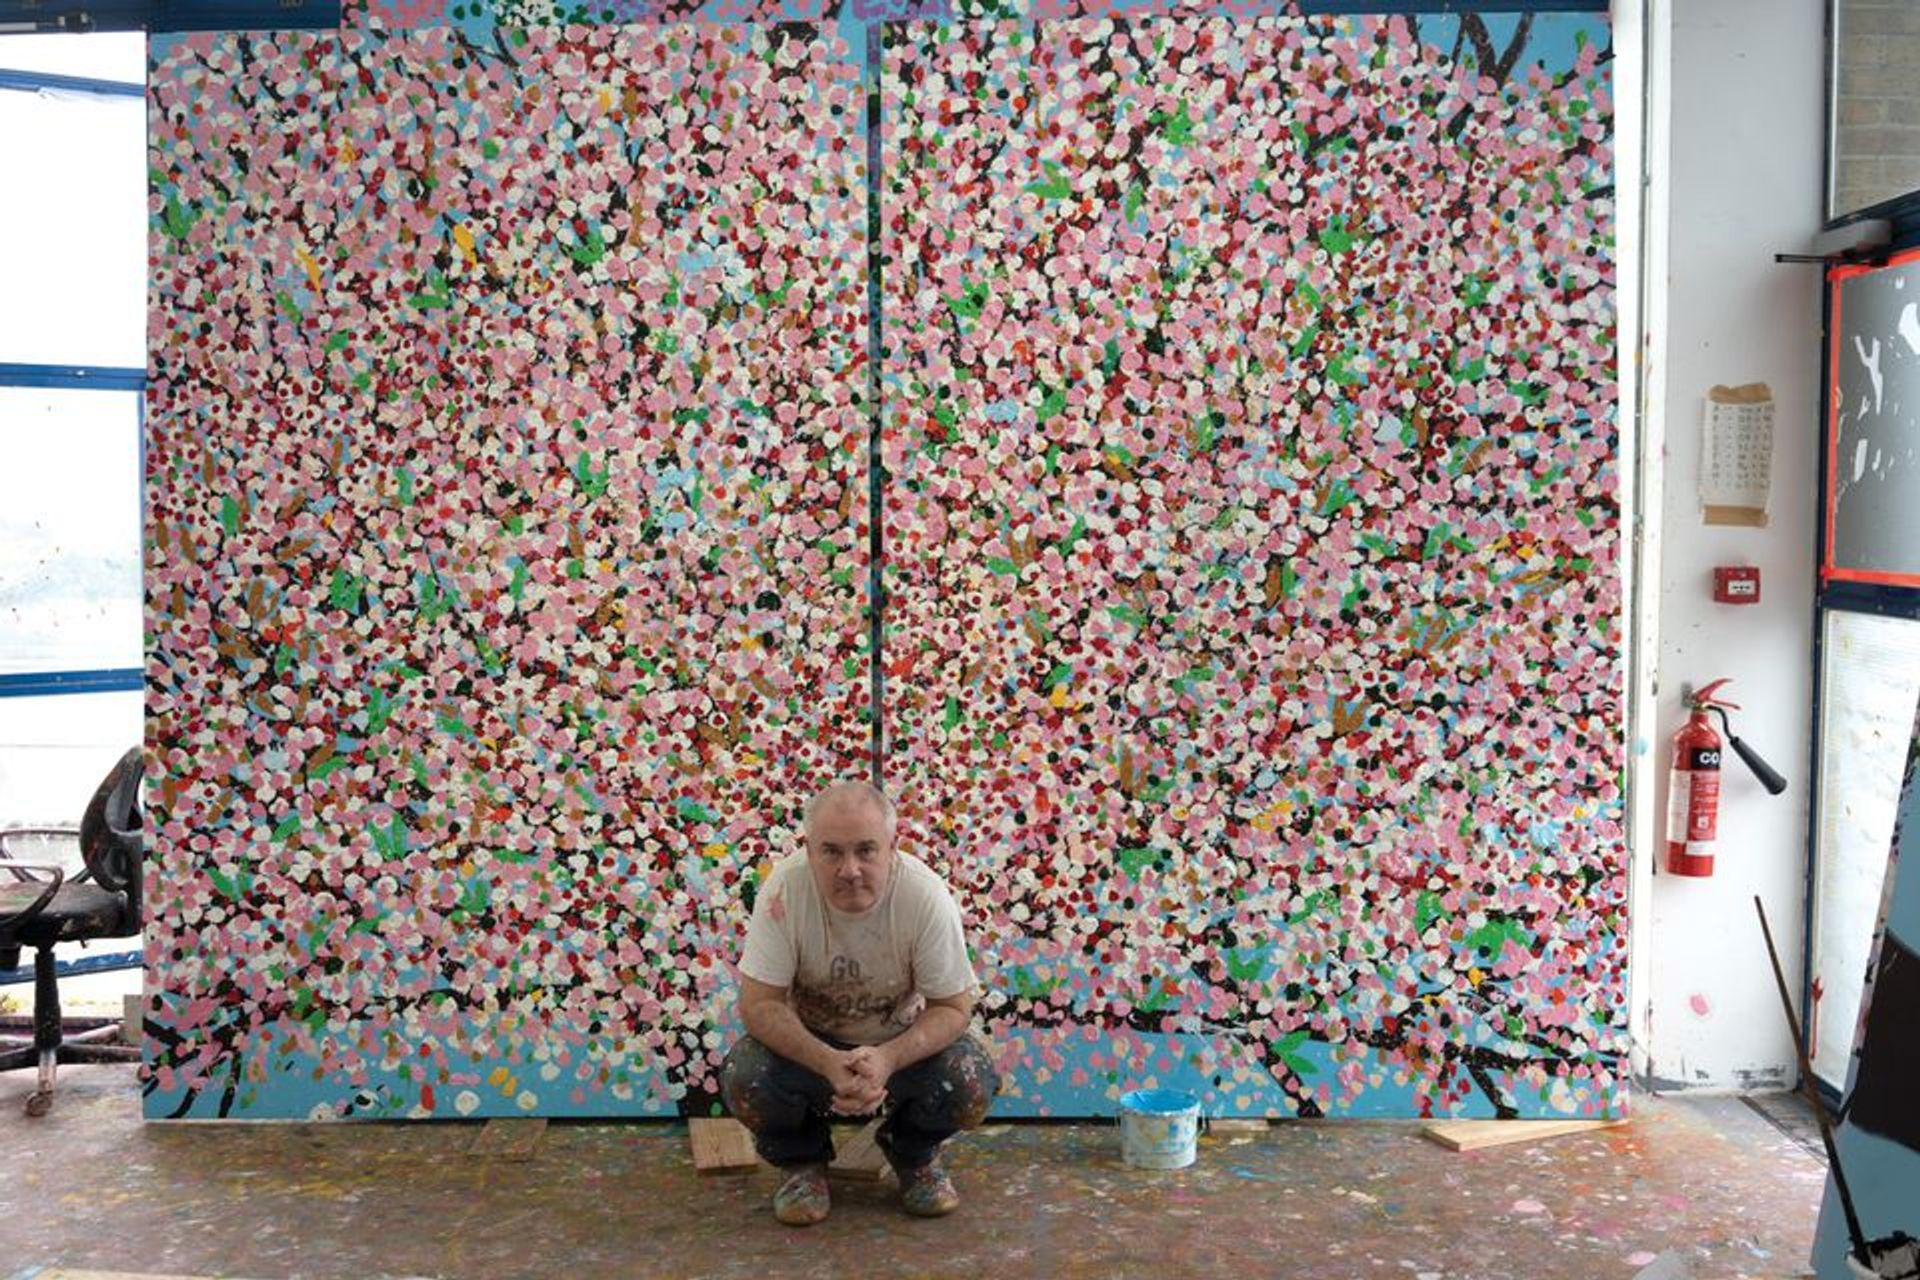 Damien Hirst is now producing most of his work solo, after a return to painting. His Cherry Blossom paintings are currently on show at the Fondation Cartier in Paris © Prudence Cuming